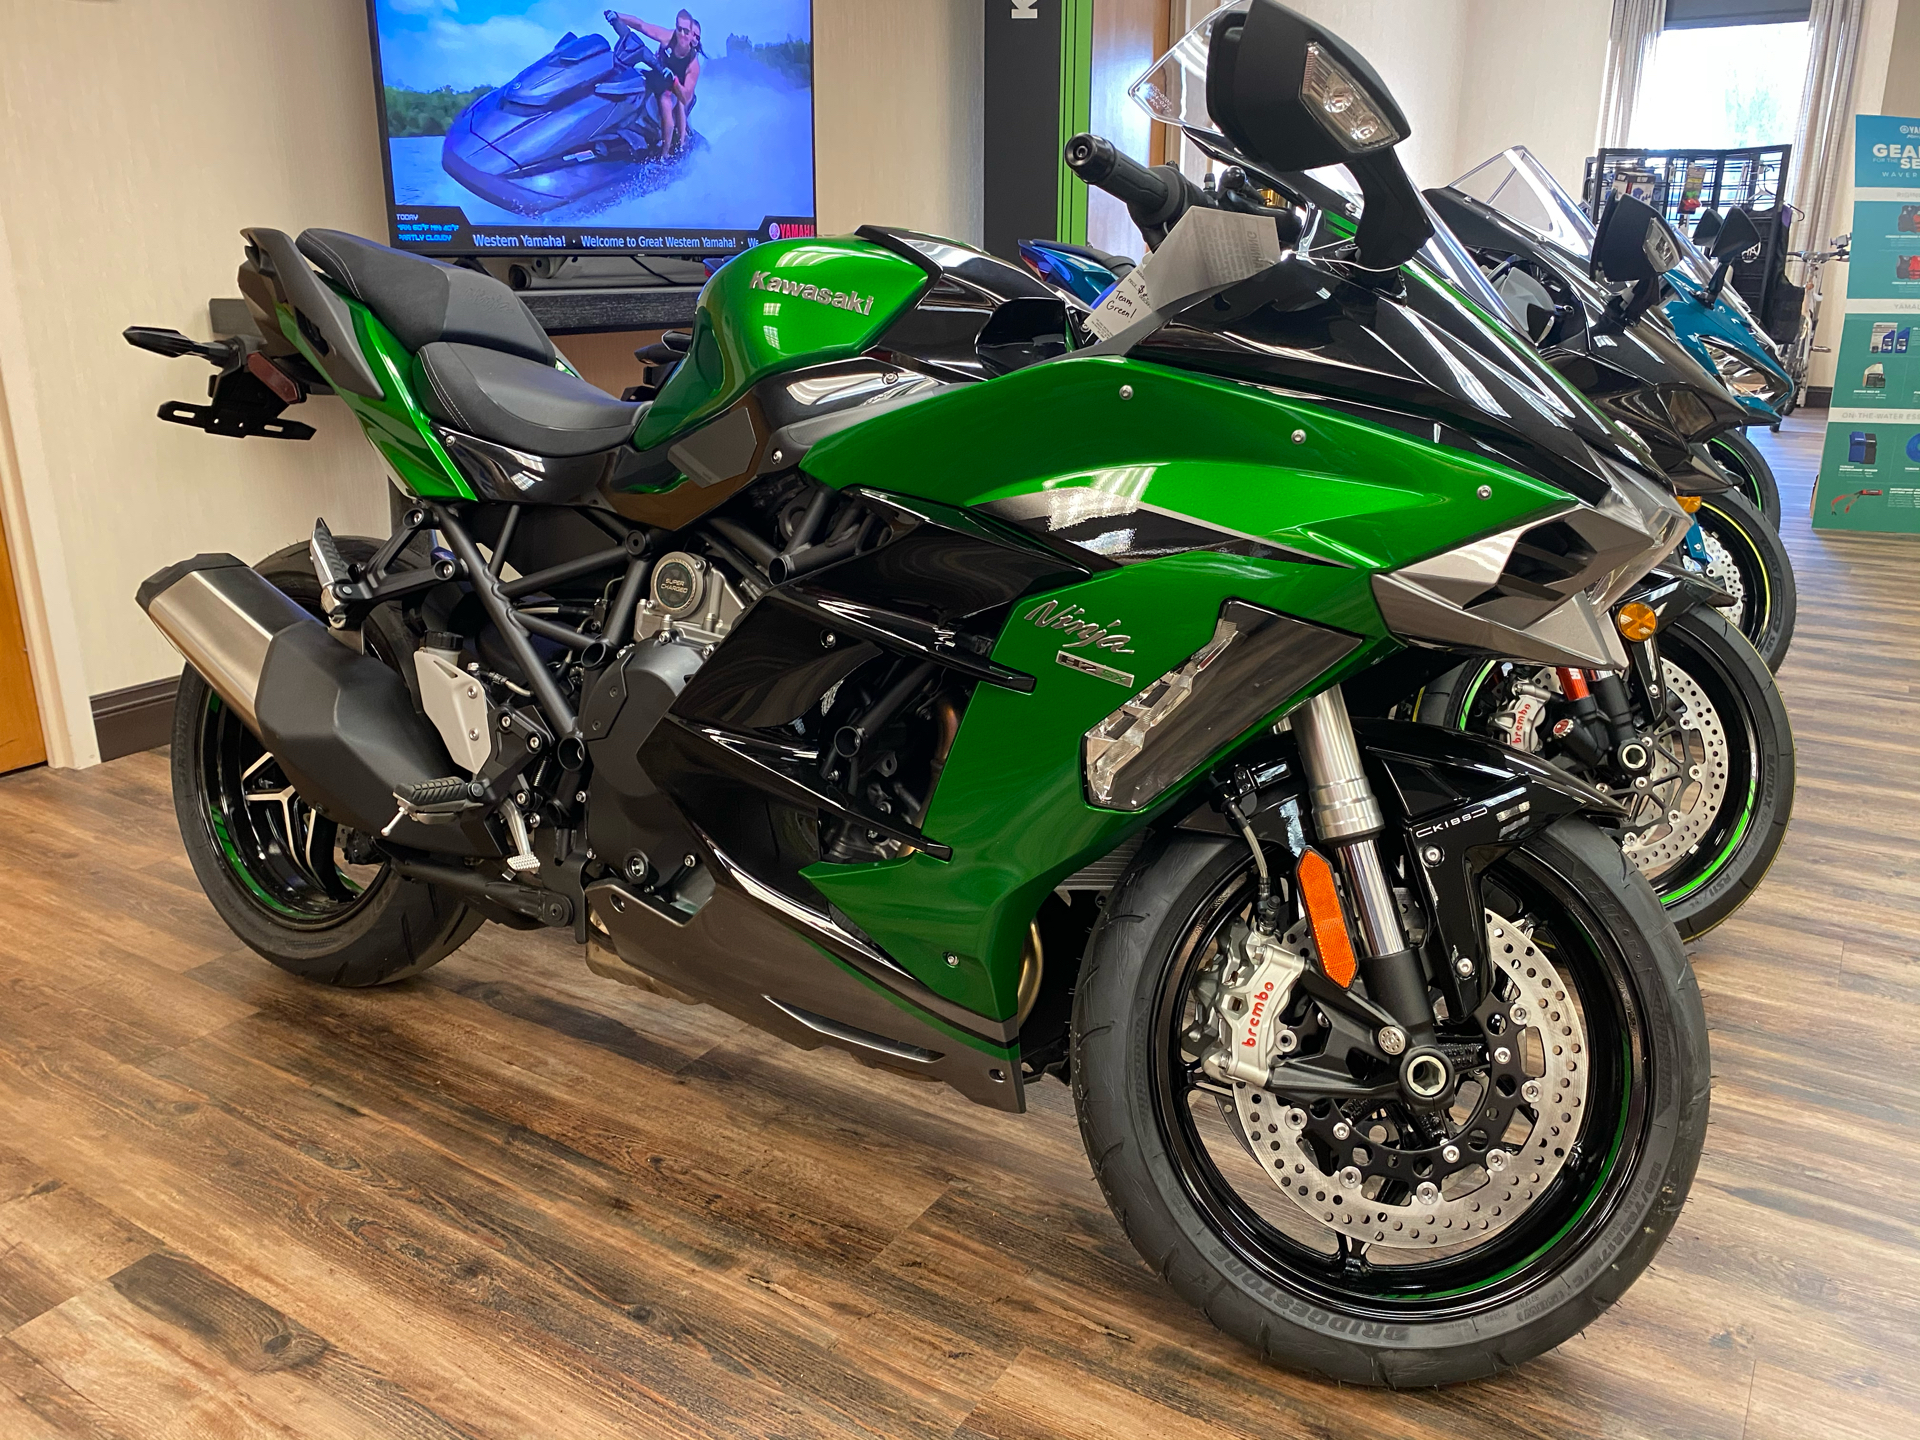 2021 Kawasaki Ninja H2 SX SE+ in Statesville, North Carolina - Photo 1